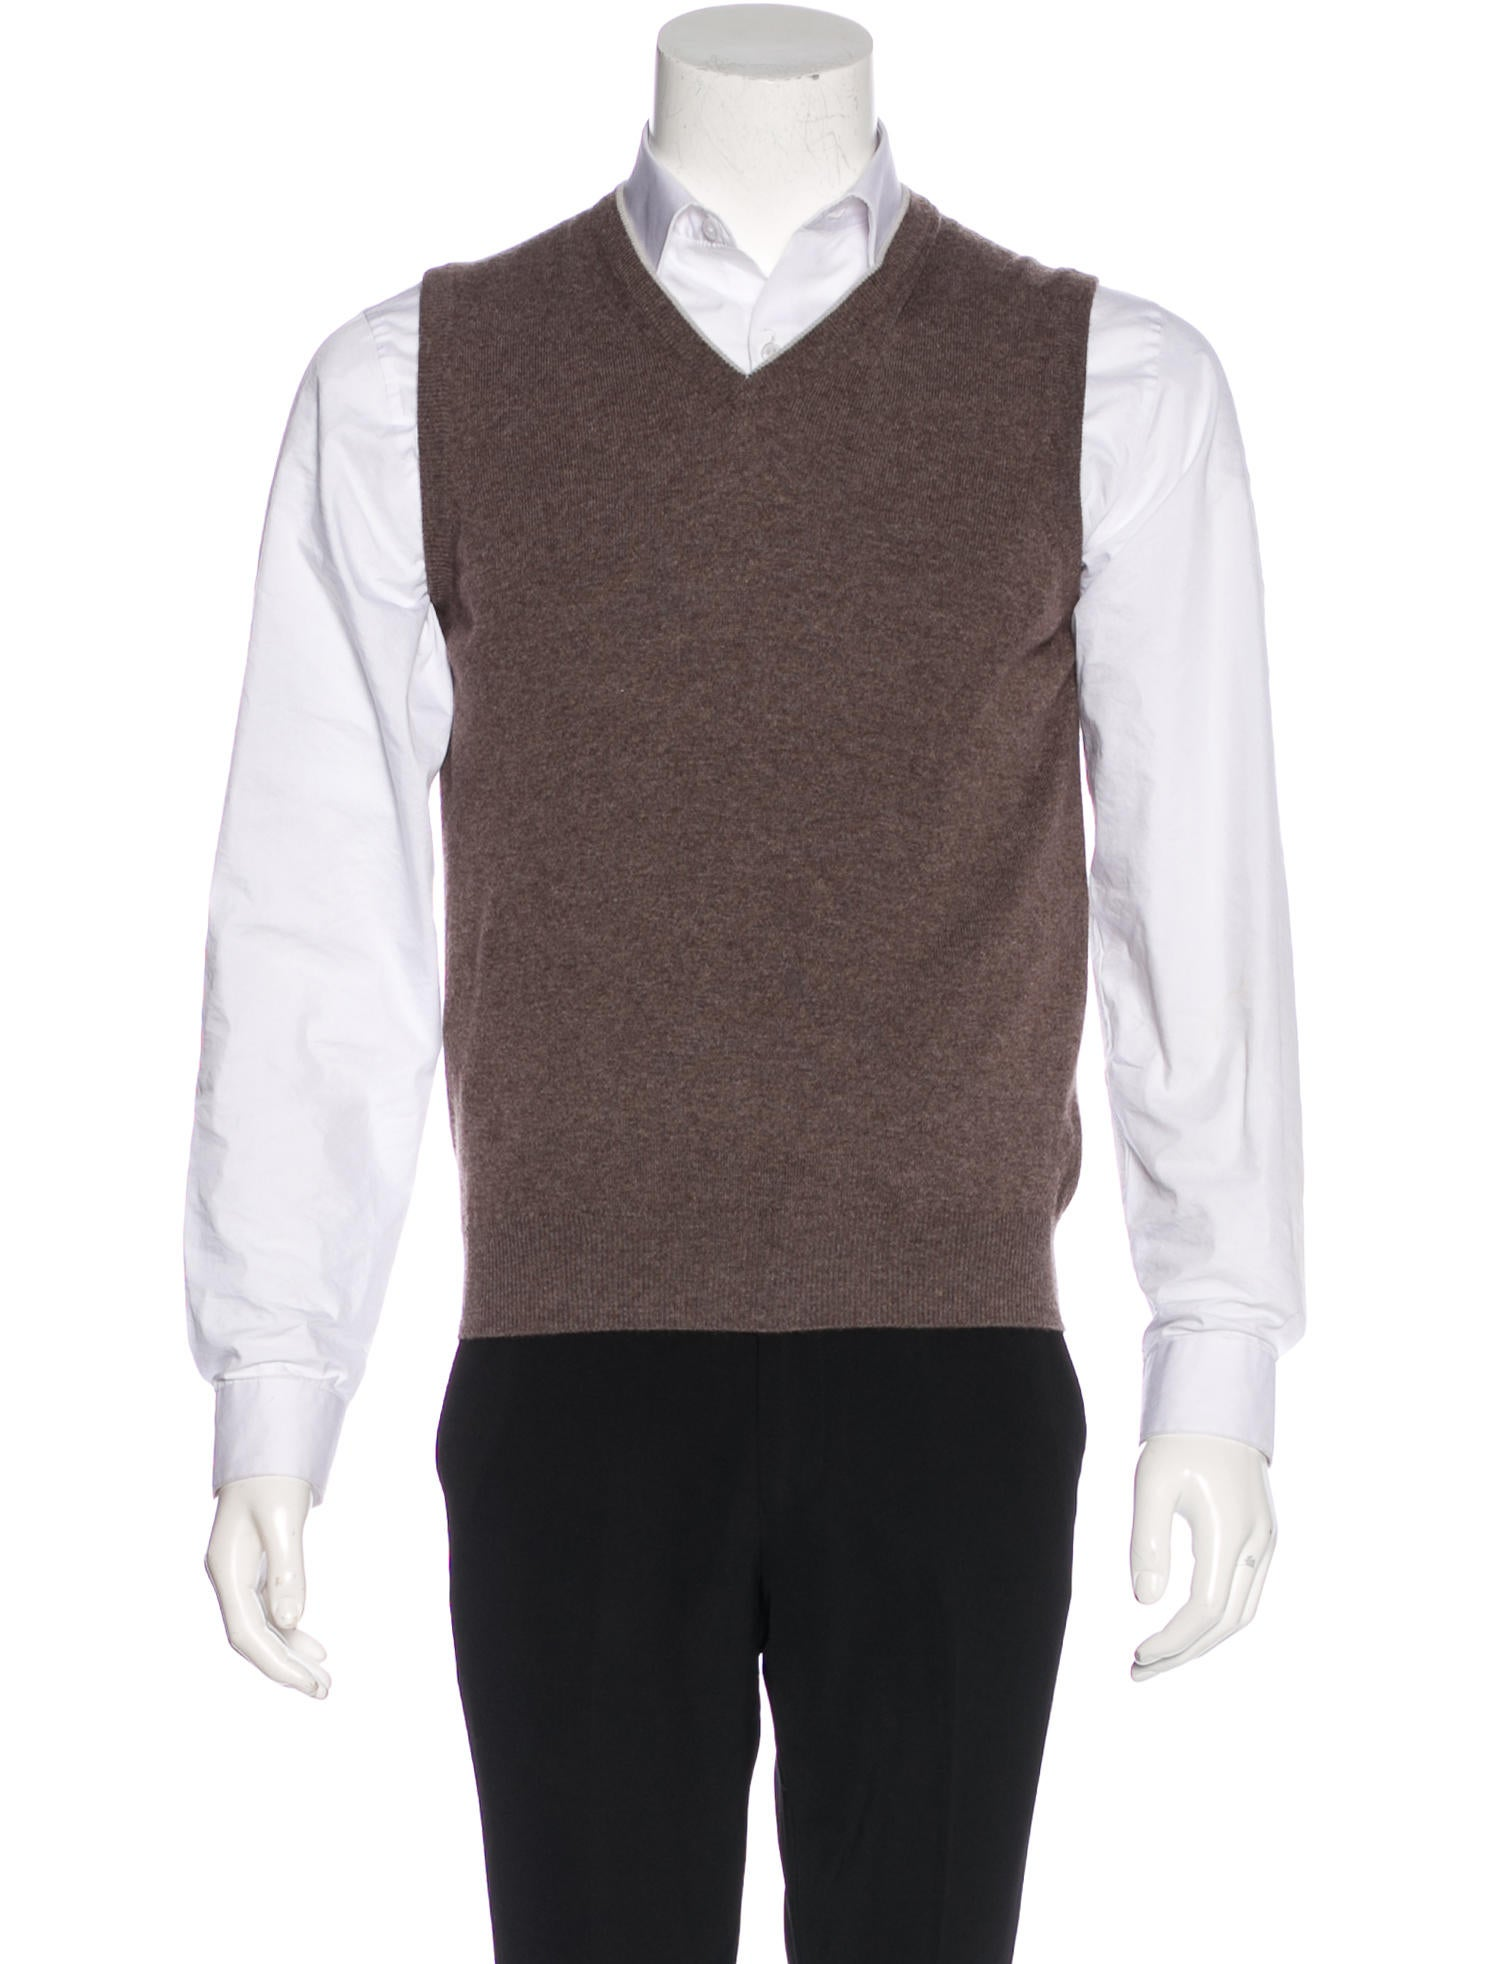 Doriani Cashmere Sweater Vest - Clothing - WDORN20006 | The RealReal